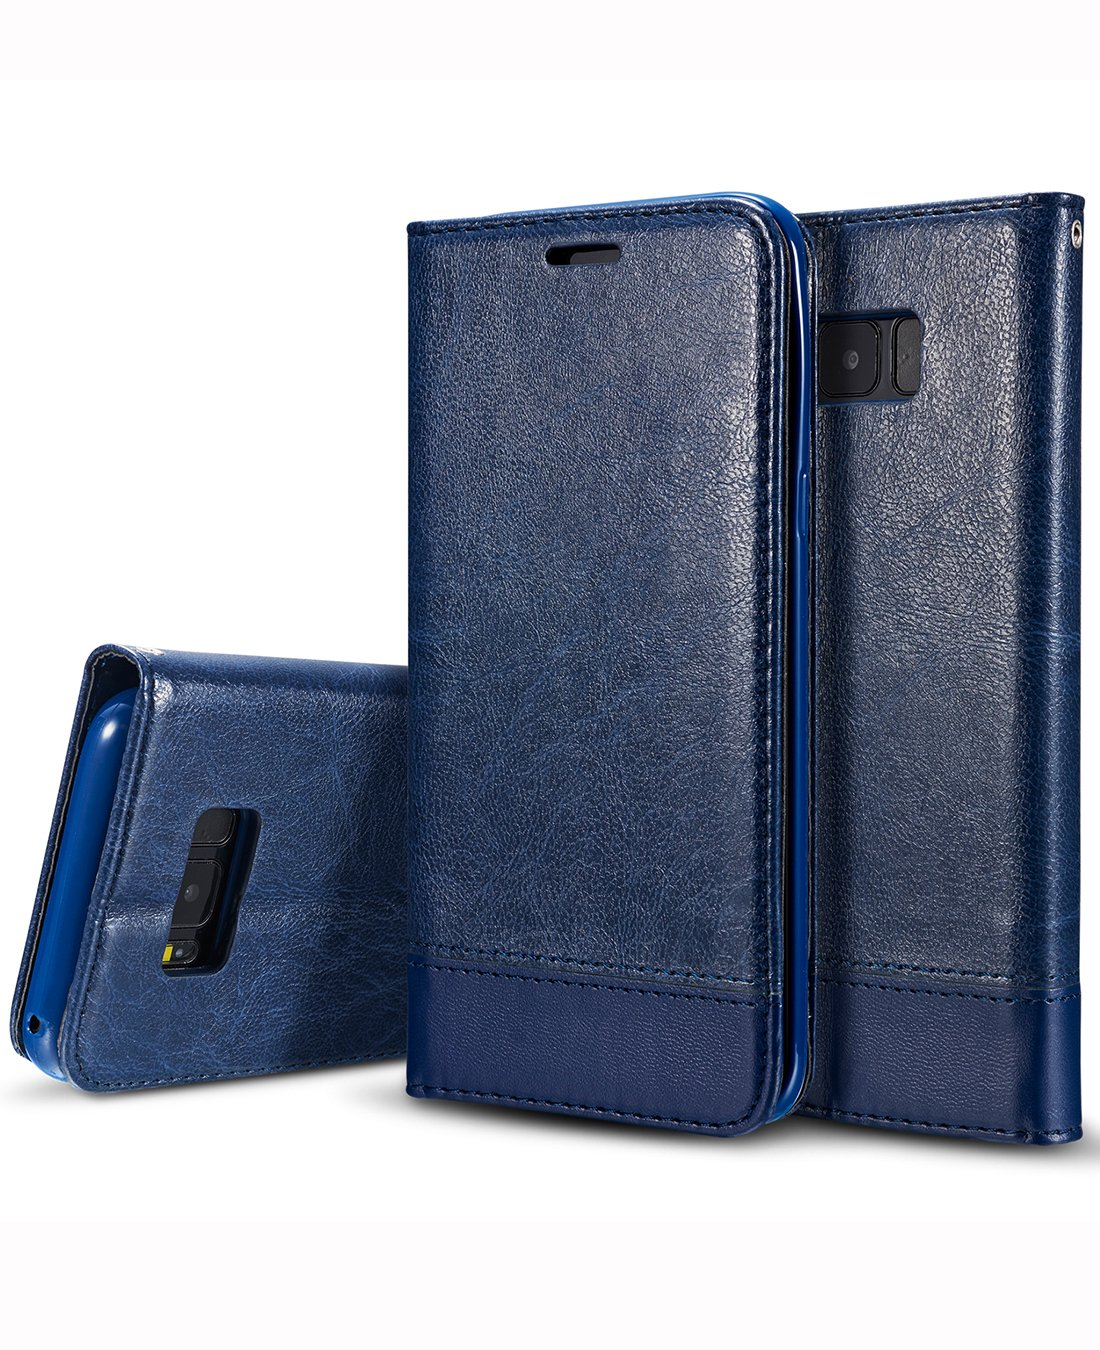 "Galaxy S8 Plus Case, Galaxy S8 Plus Flip Case, Crosspace S8 Plus Wallet Cases [Ultra Slim] PU Leather Folio Book Stand Cover with Card Slots for Samsung Galaxy S8 Plus 6.2""-Blue"